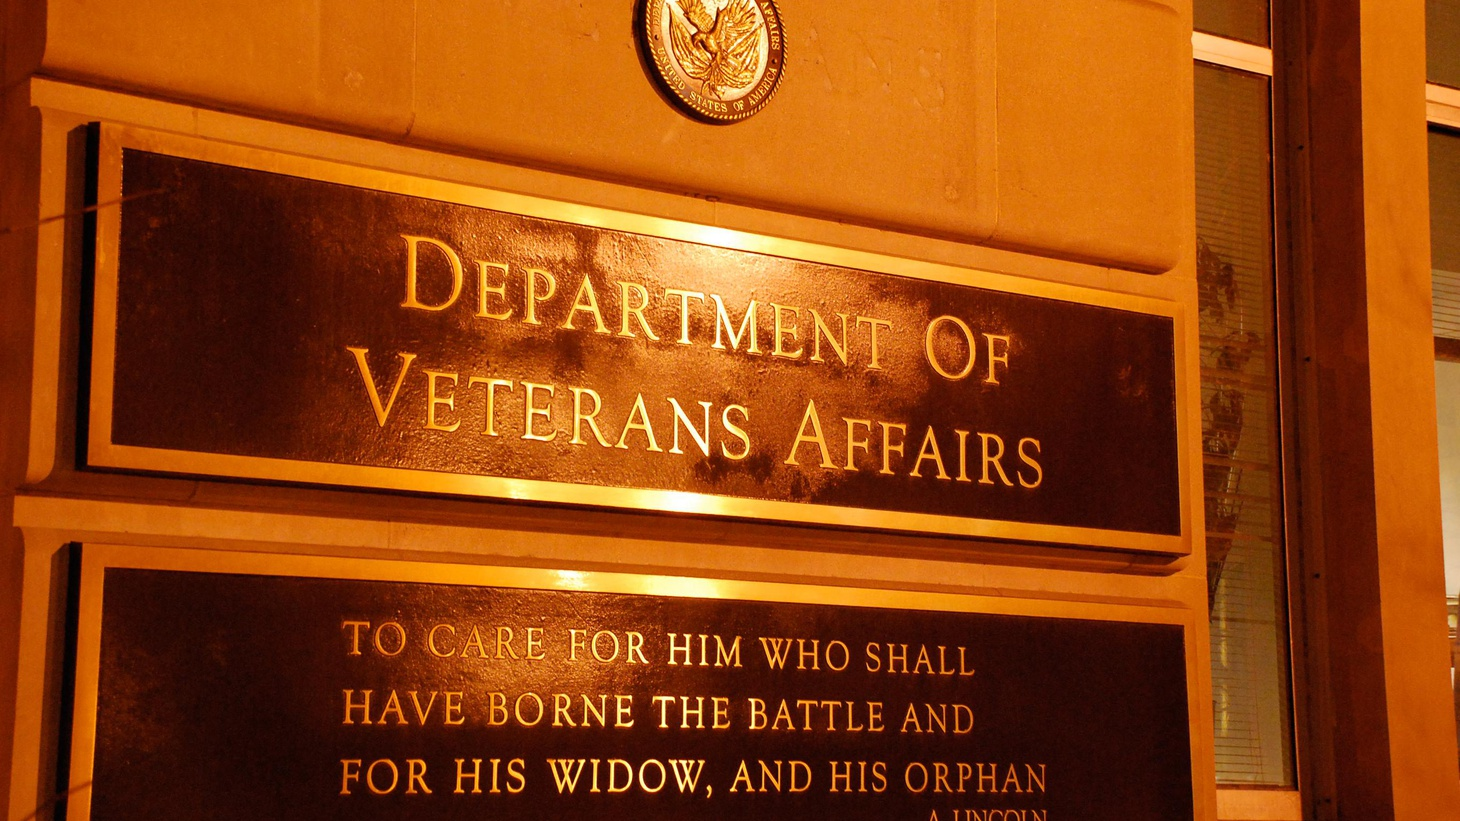 The Veterans Administration is far behind in processing claims. We hear why so many vets are so frustrated, despite bipartisan promises they'll get what they deserve.